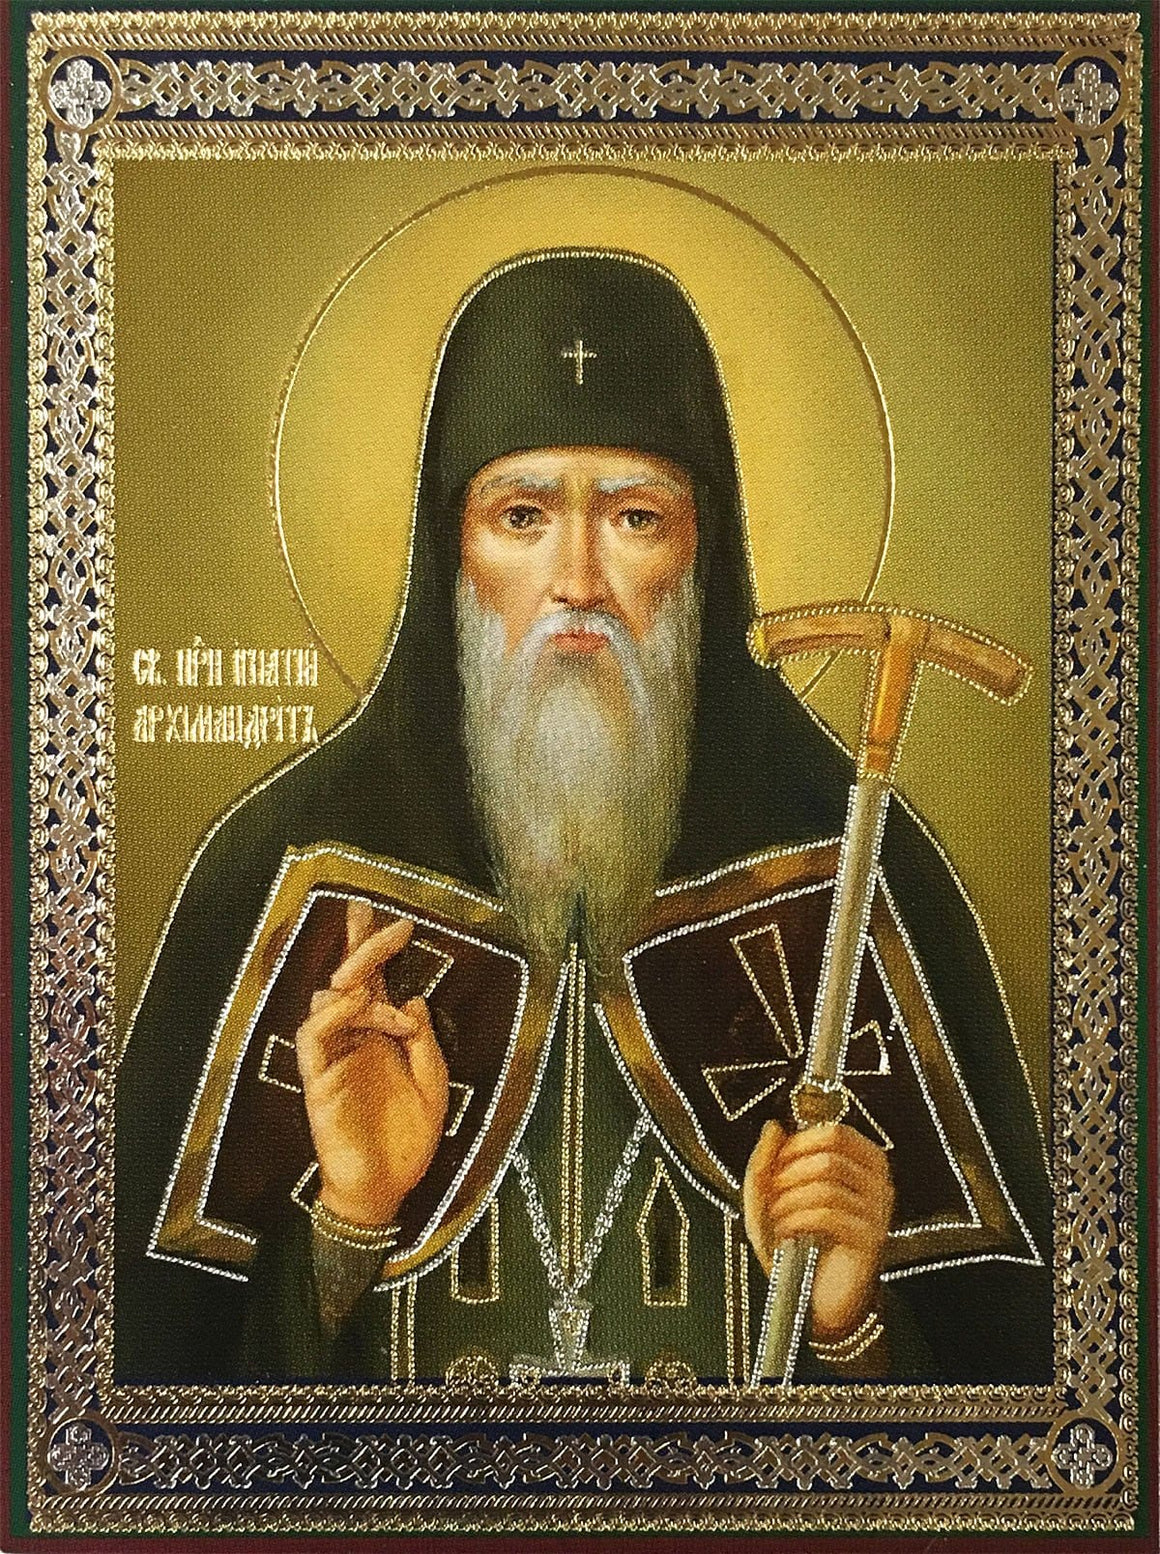 St. Ignatius the Venerable Archimandrite of the Kiev-Pechersk Caves Icon